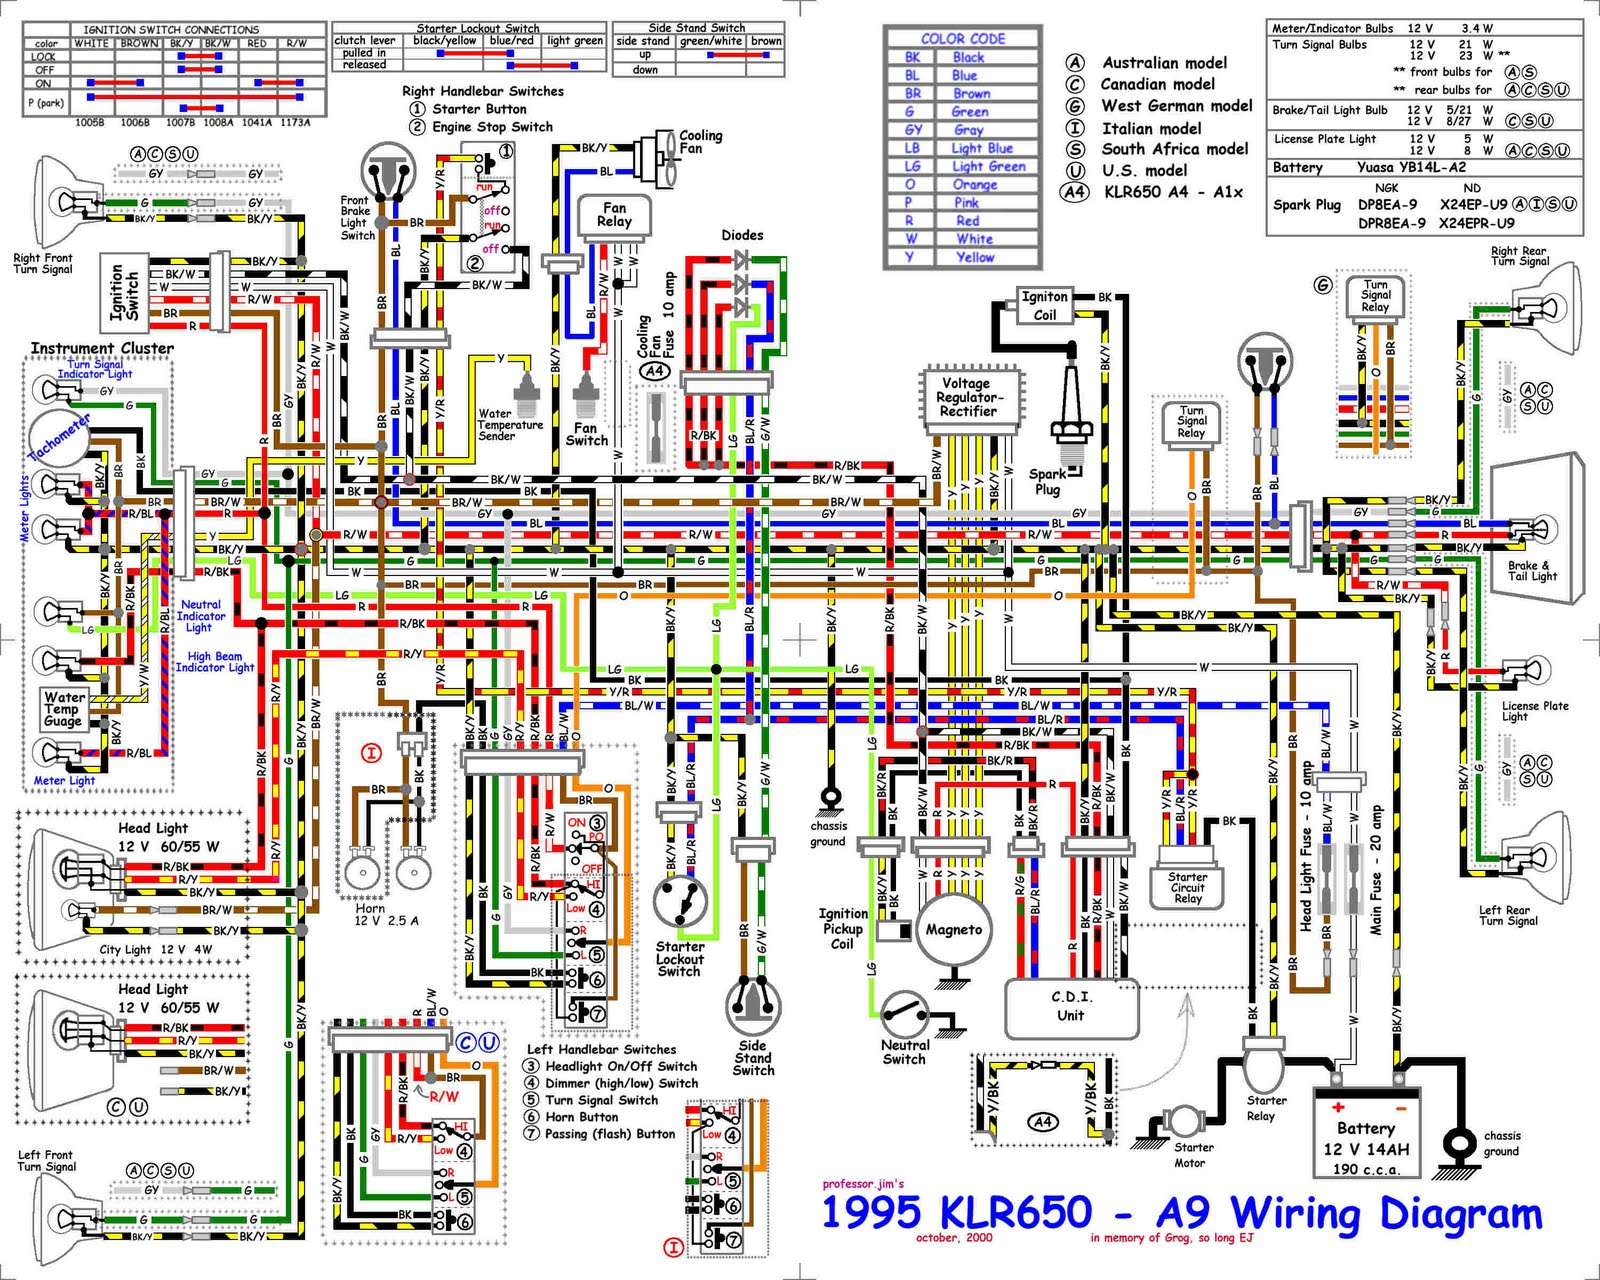 small resolution of 76 monte carlo wiring diagram simple wiring diagrams 1985 monte carlo wiring diagram 1974 monte carlo wiring diagram